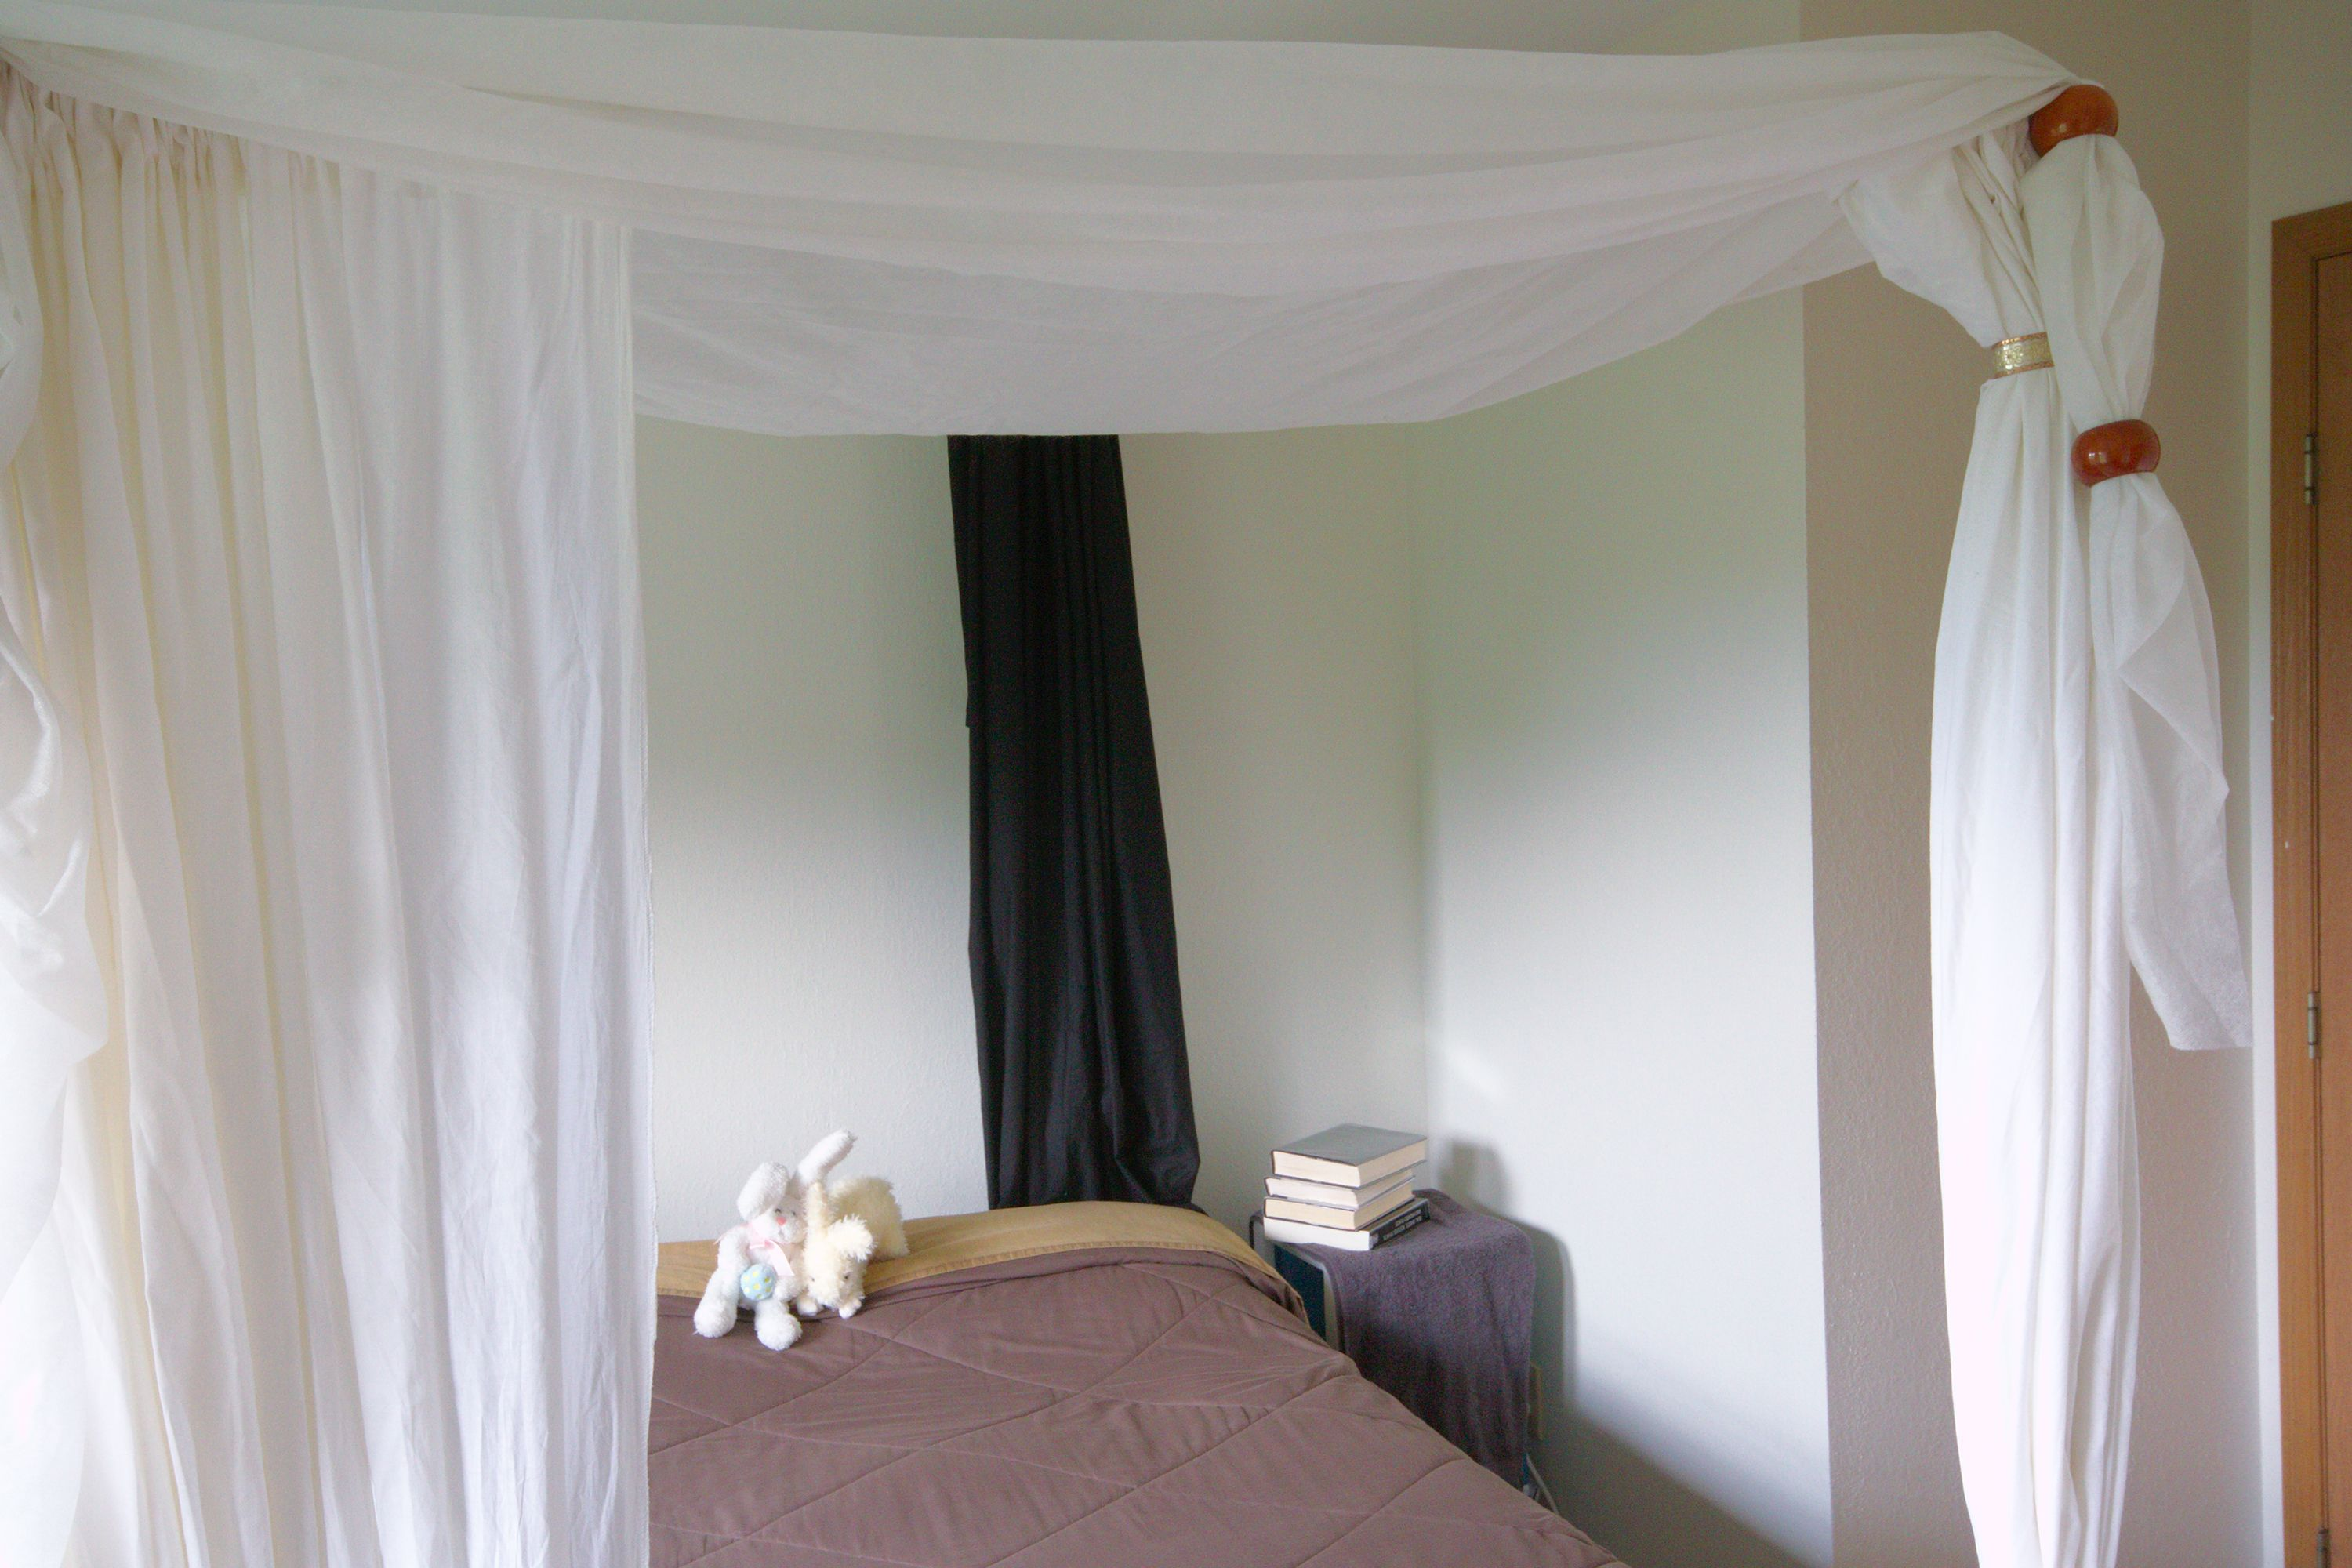 How to use pvc to make canopy bed canopy pvc pipe and pipes